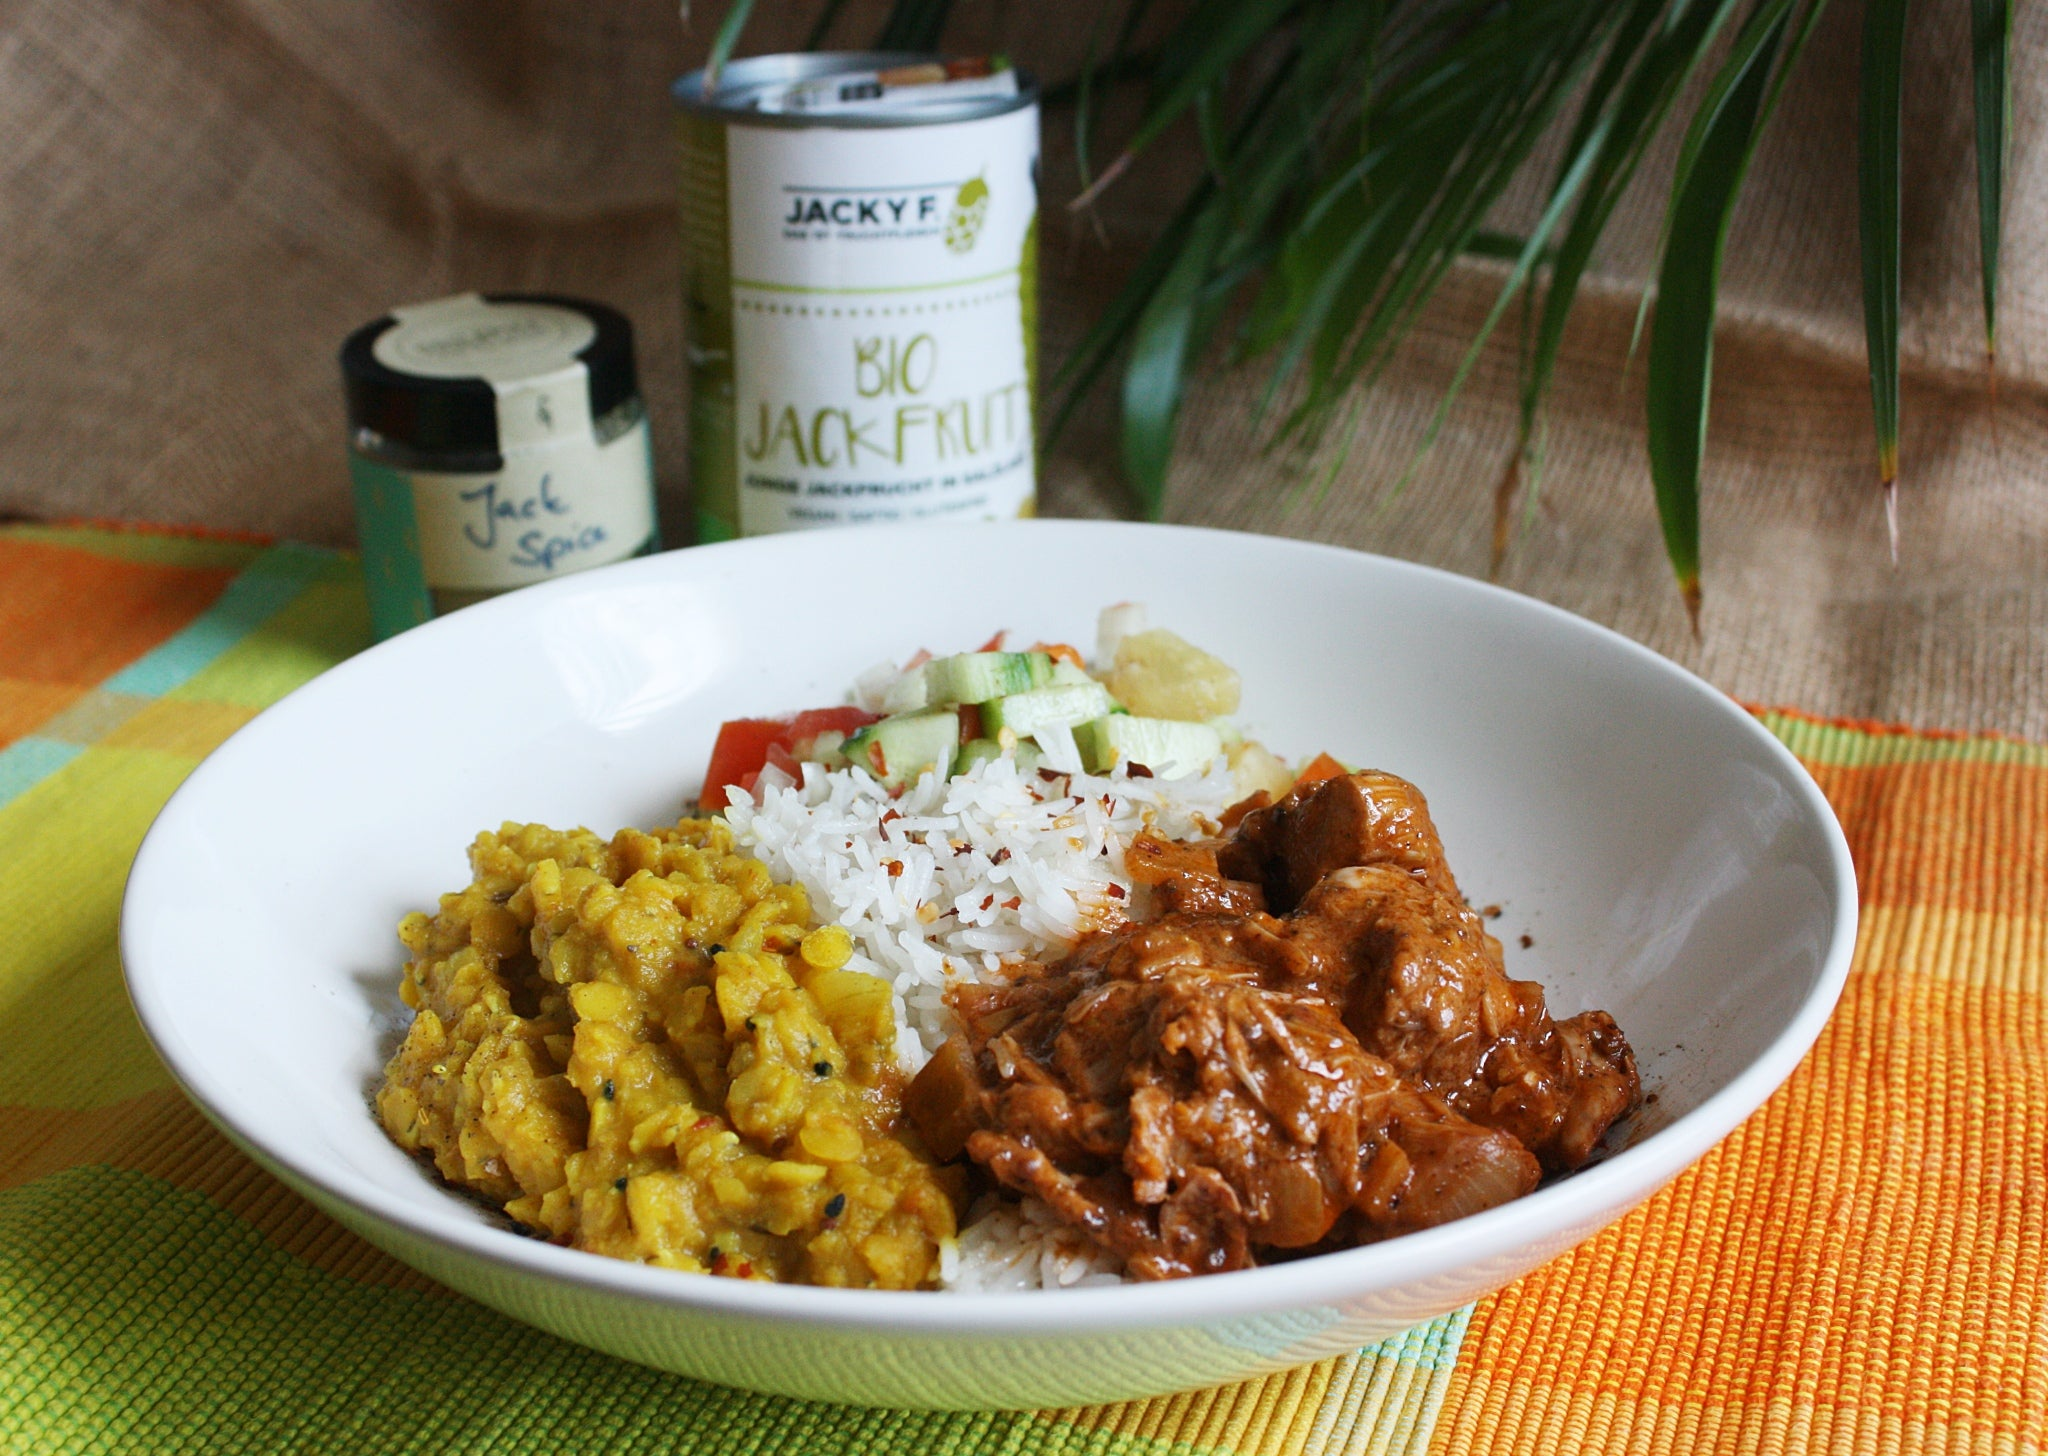 Sri Lanka Jackfruit Curry